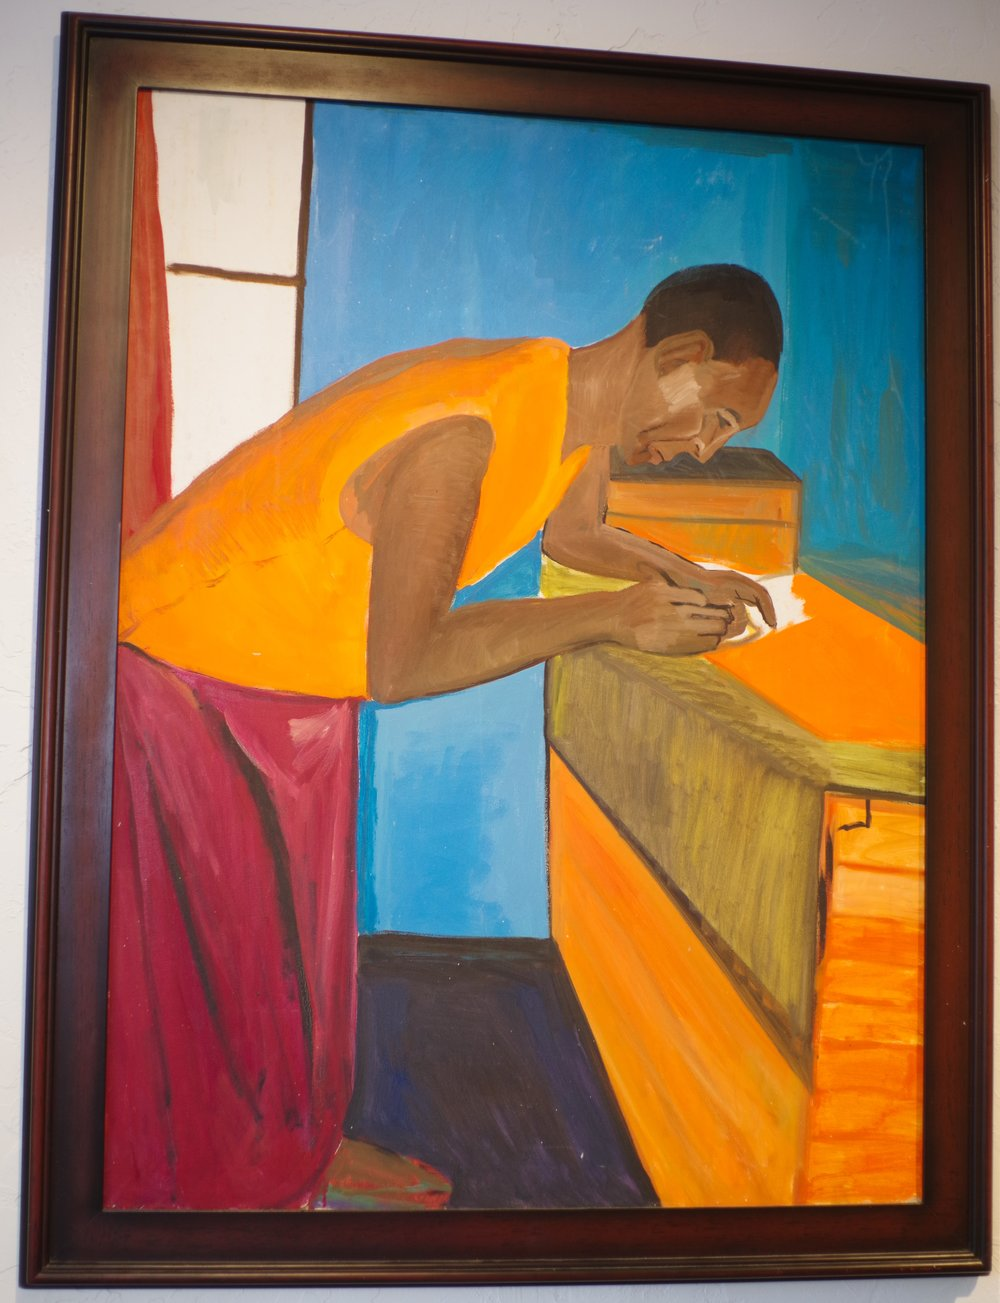 Monk Preparing Books - $6,400